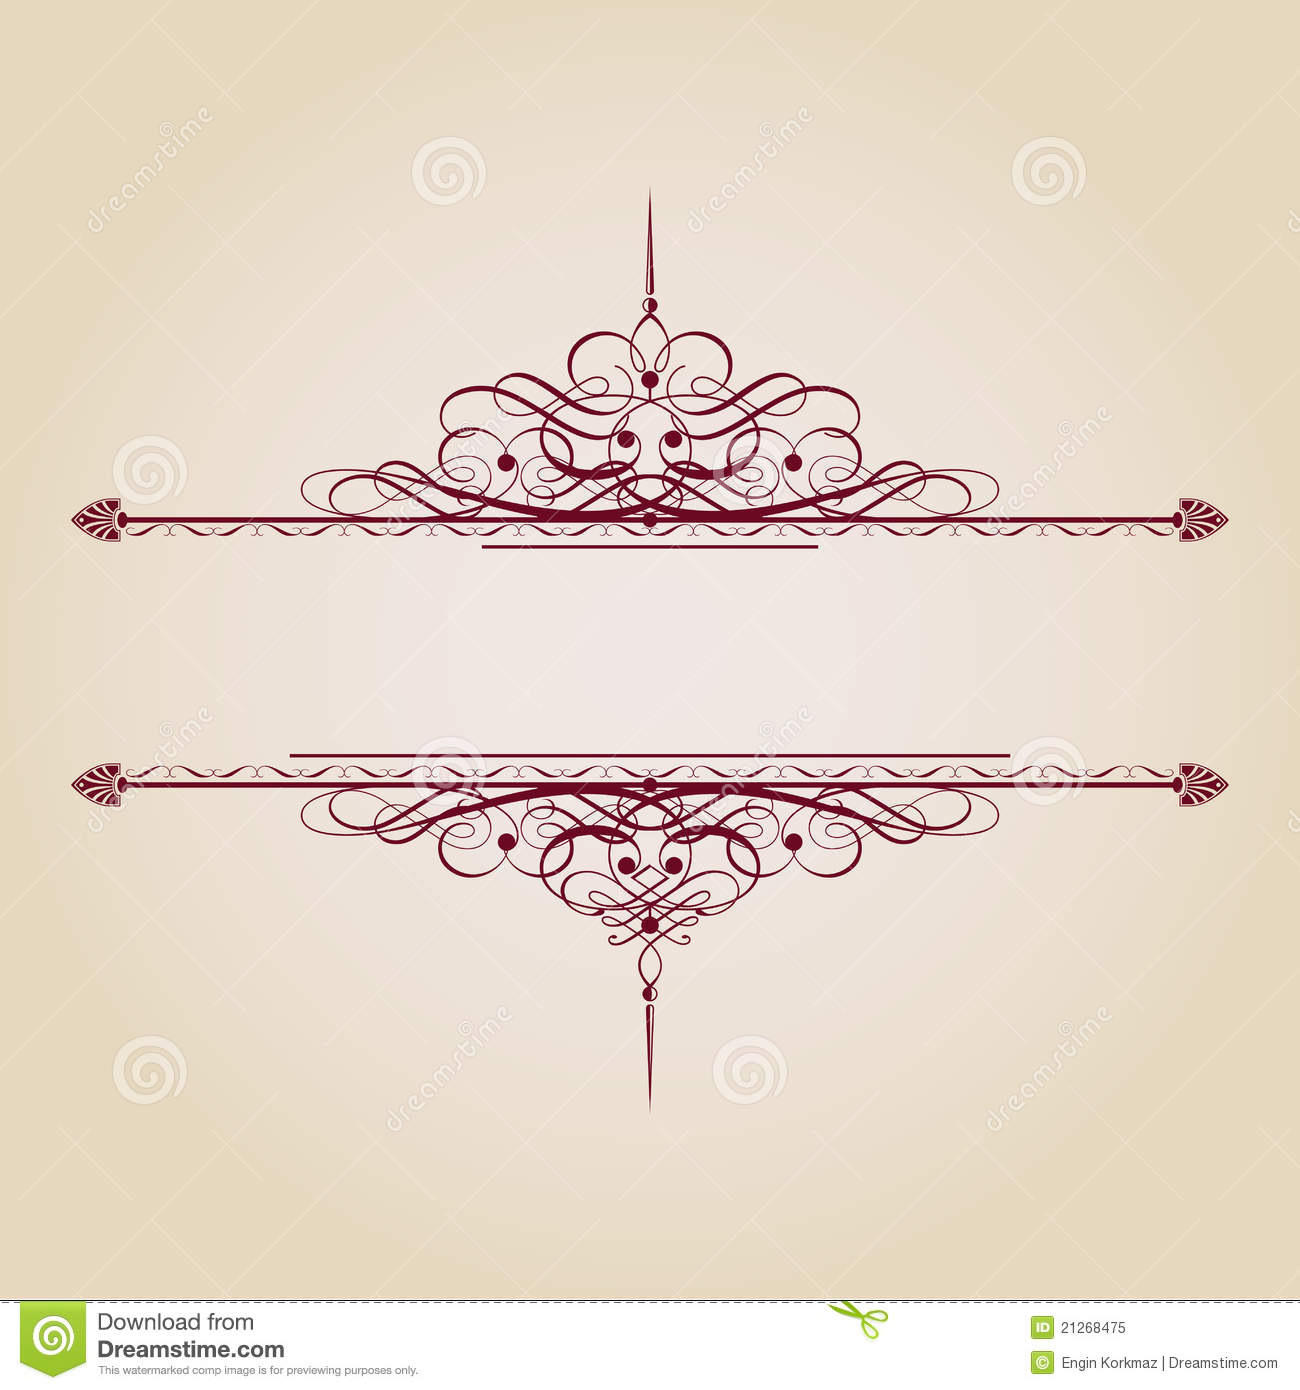 vintage ornamental banner stock vector. image of beautiful - 21268475, Powerpoint templates